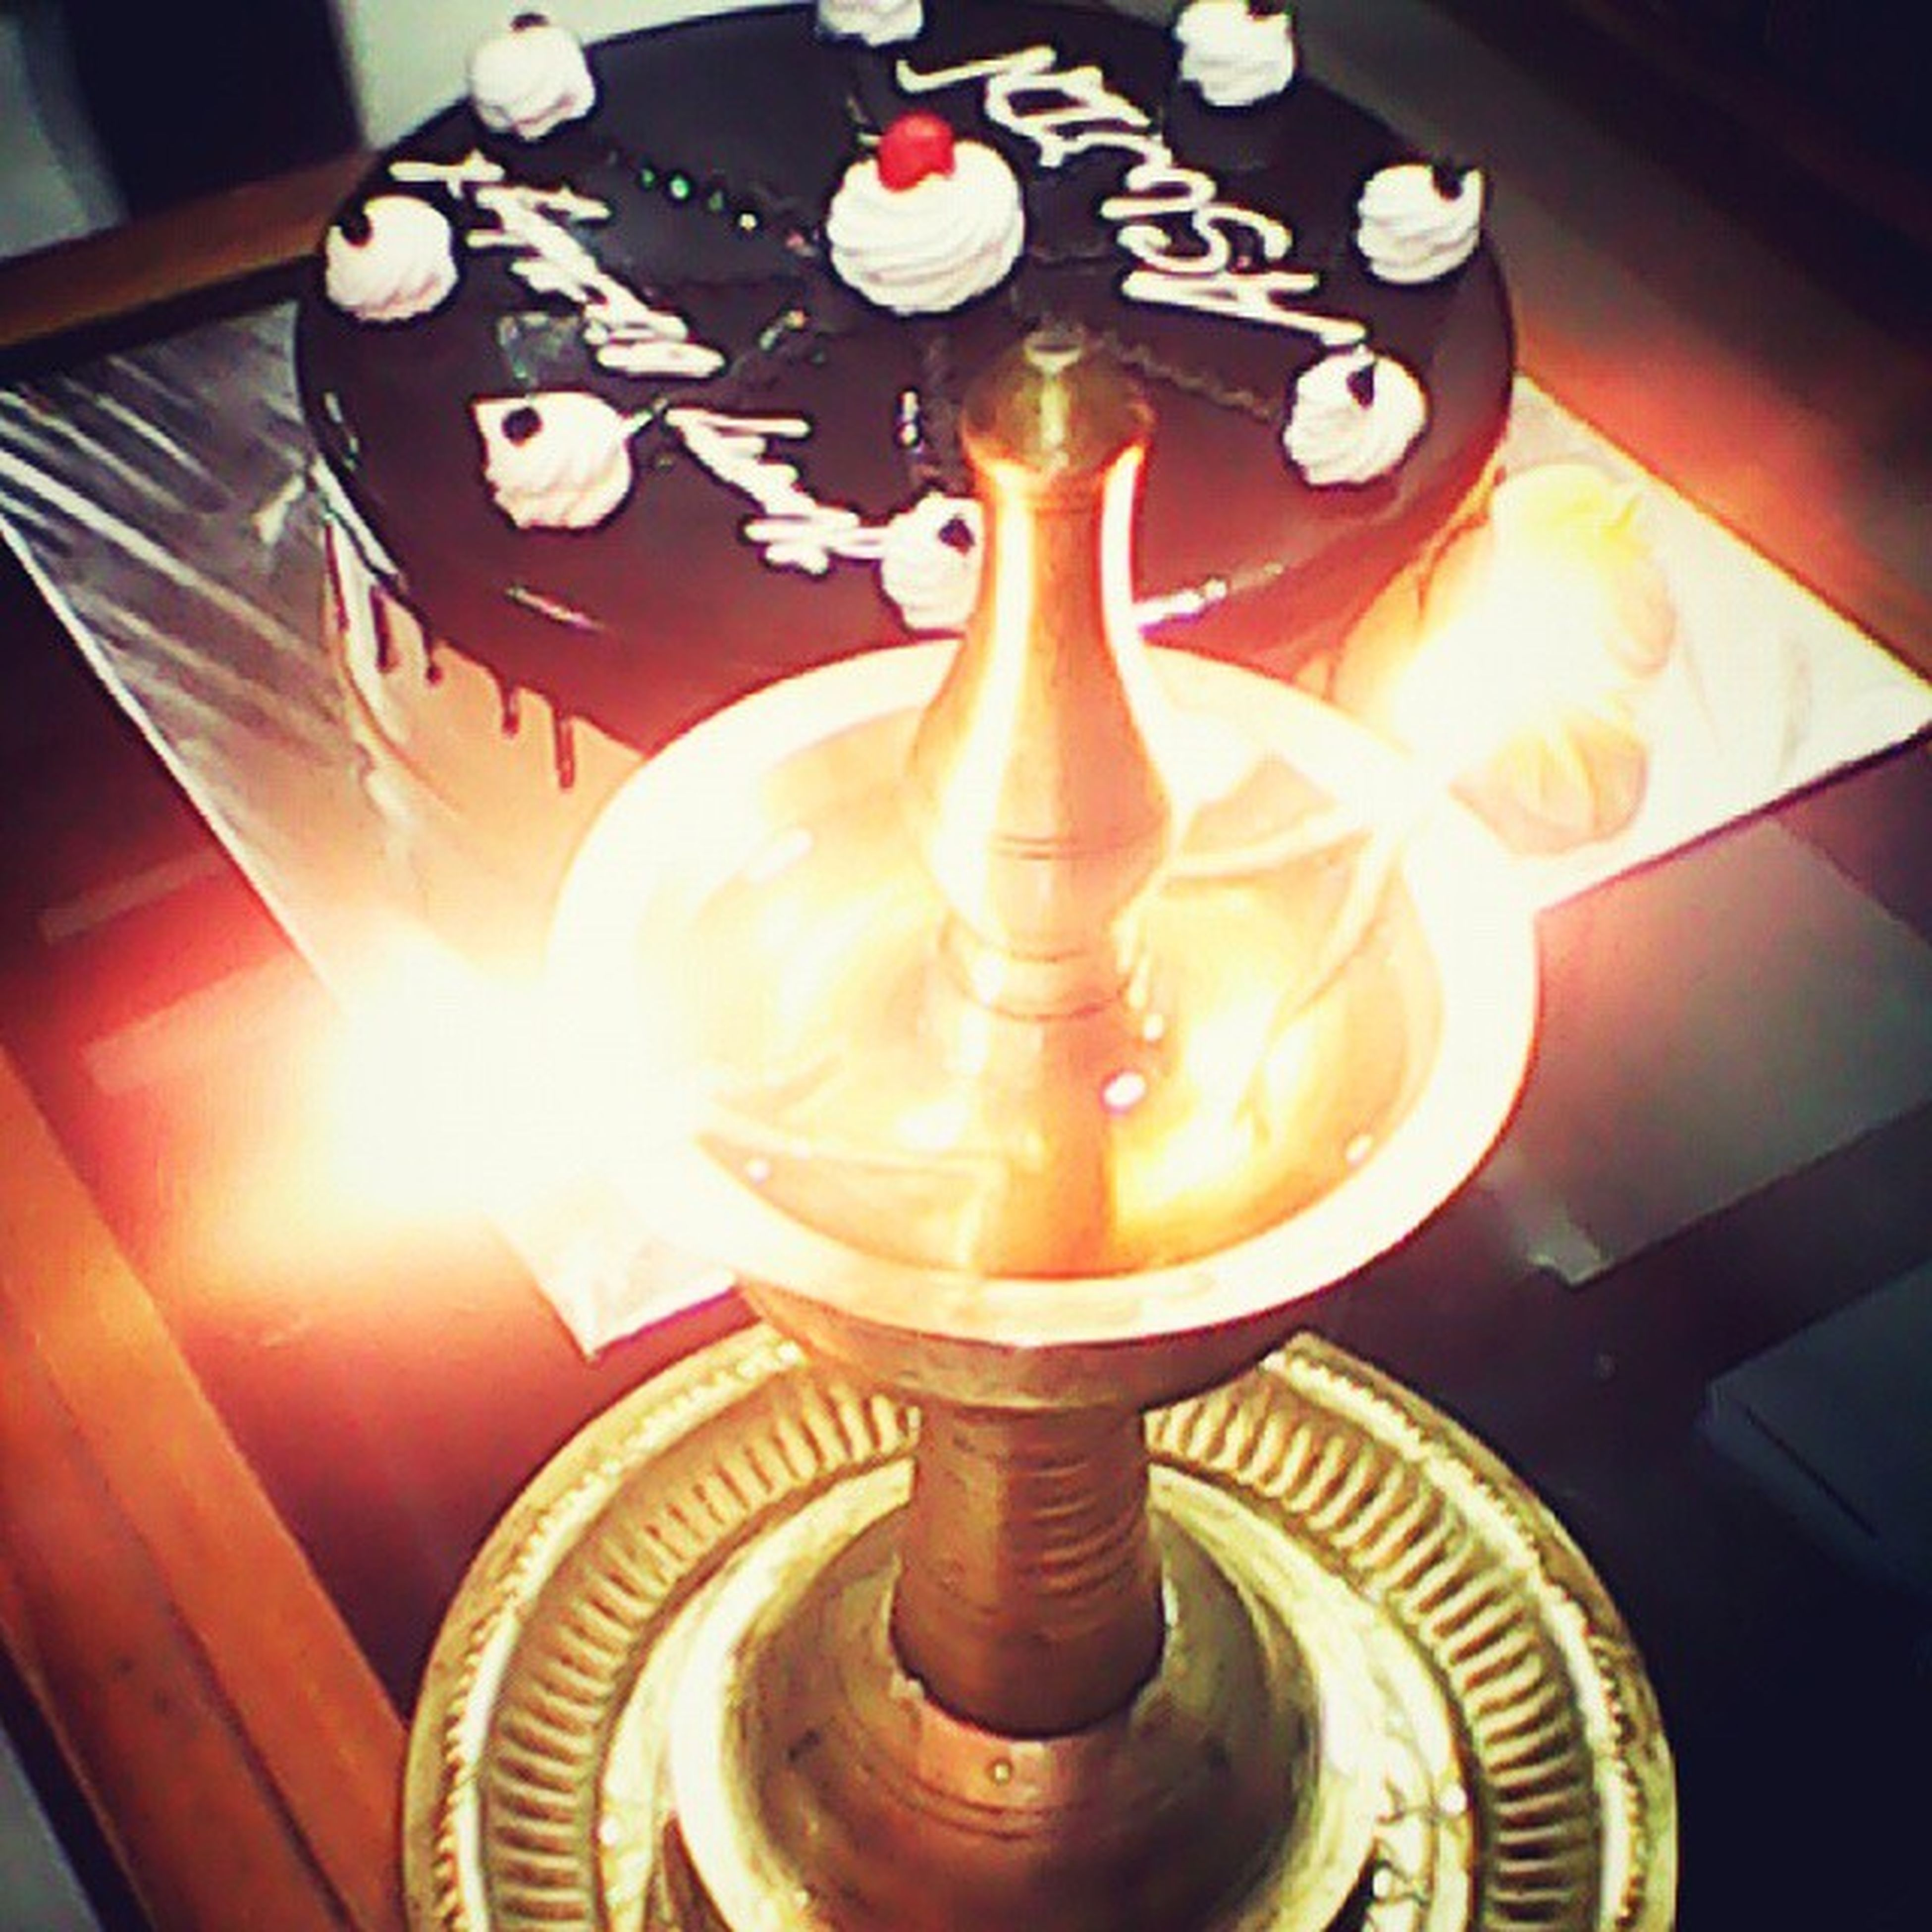 indoors, still life, table, high angle view, illuminated, close-up, no people, decoration, candle, lighting equipment, technology, home interior, wood - material, shiny, pattern, heat - temperature, old-fashioned, spiral, glowing, glass - material